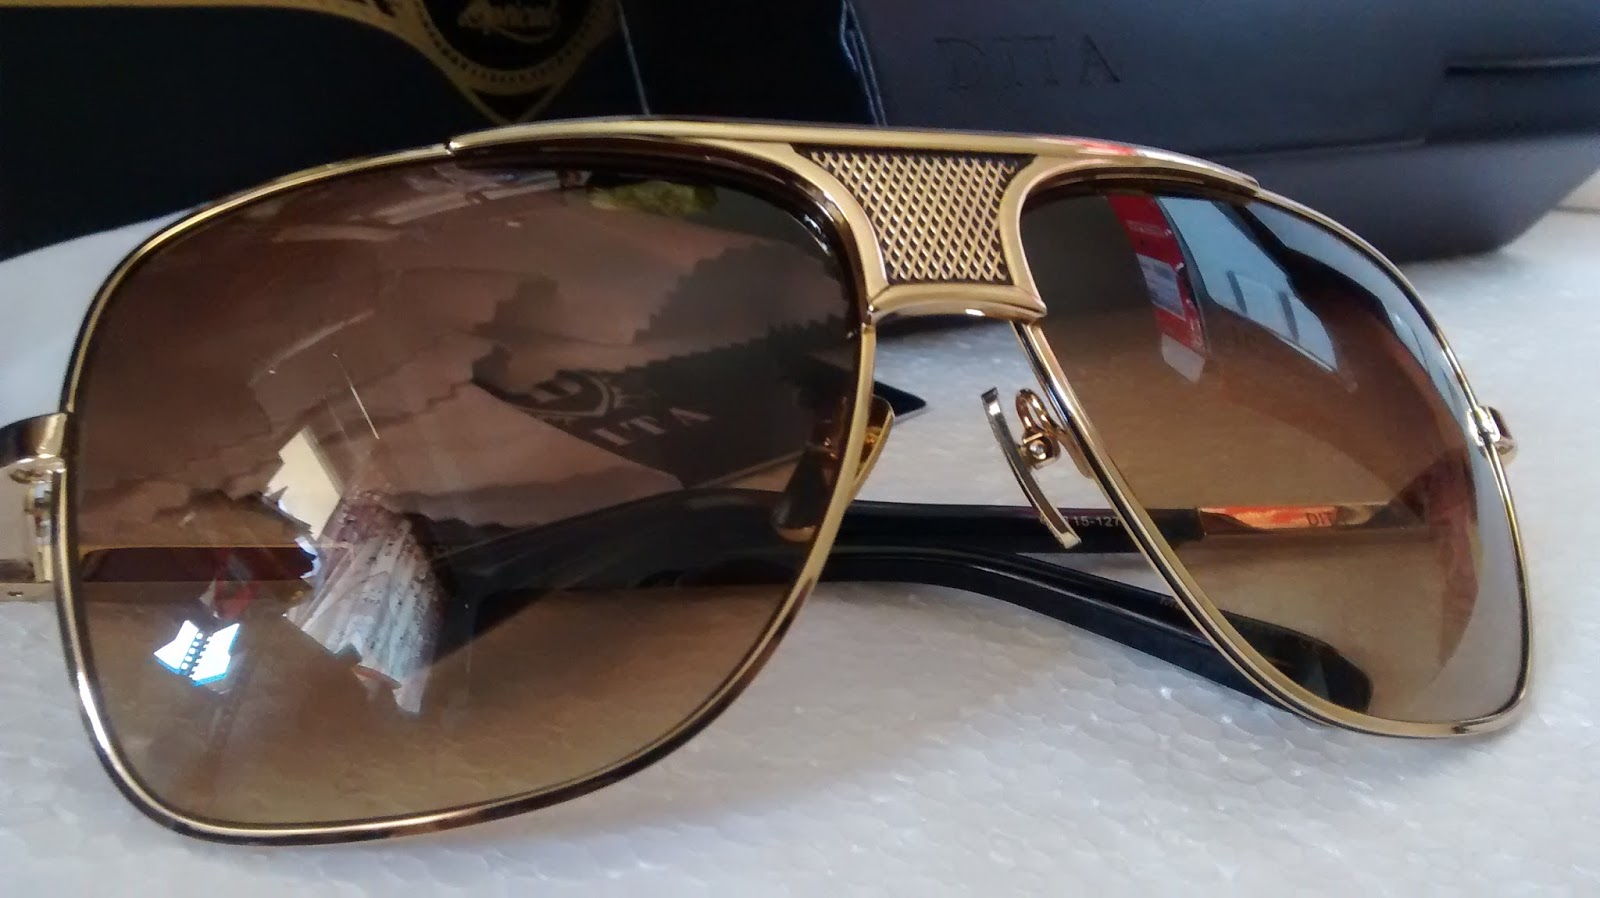 654ee8660e48 If you want that low quality DITA sunglasses we will provide that as well.  Ask us for pics but no don t expect quality.